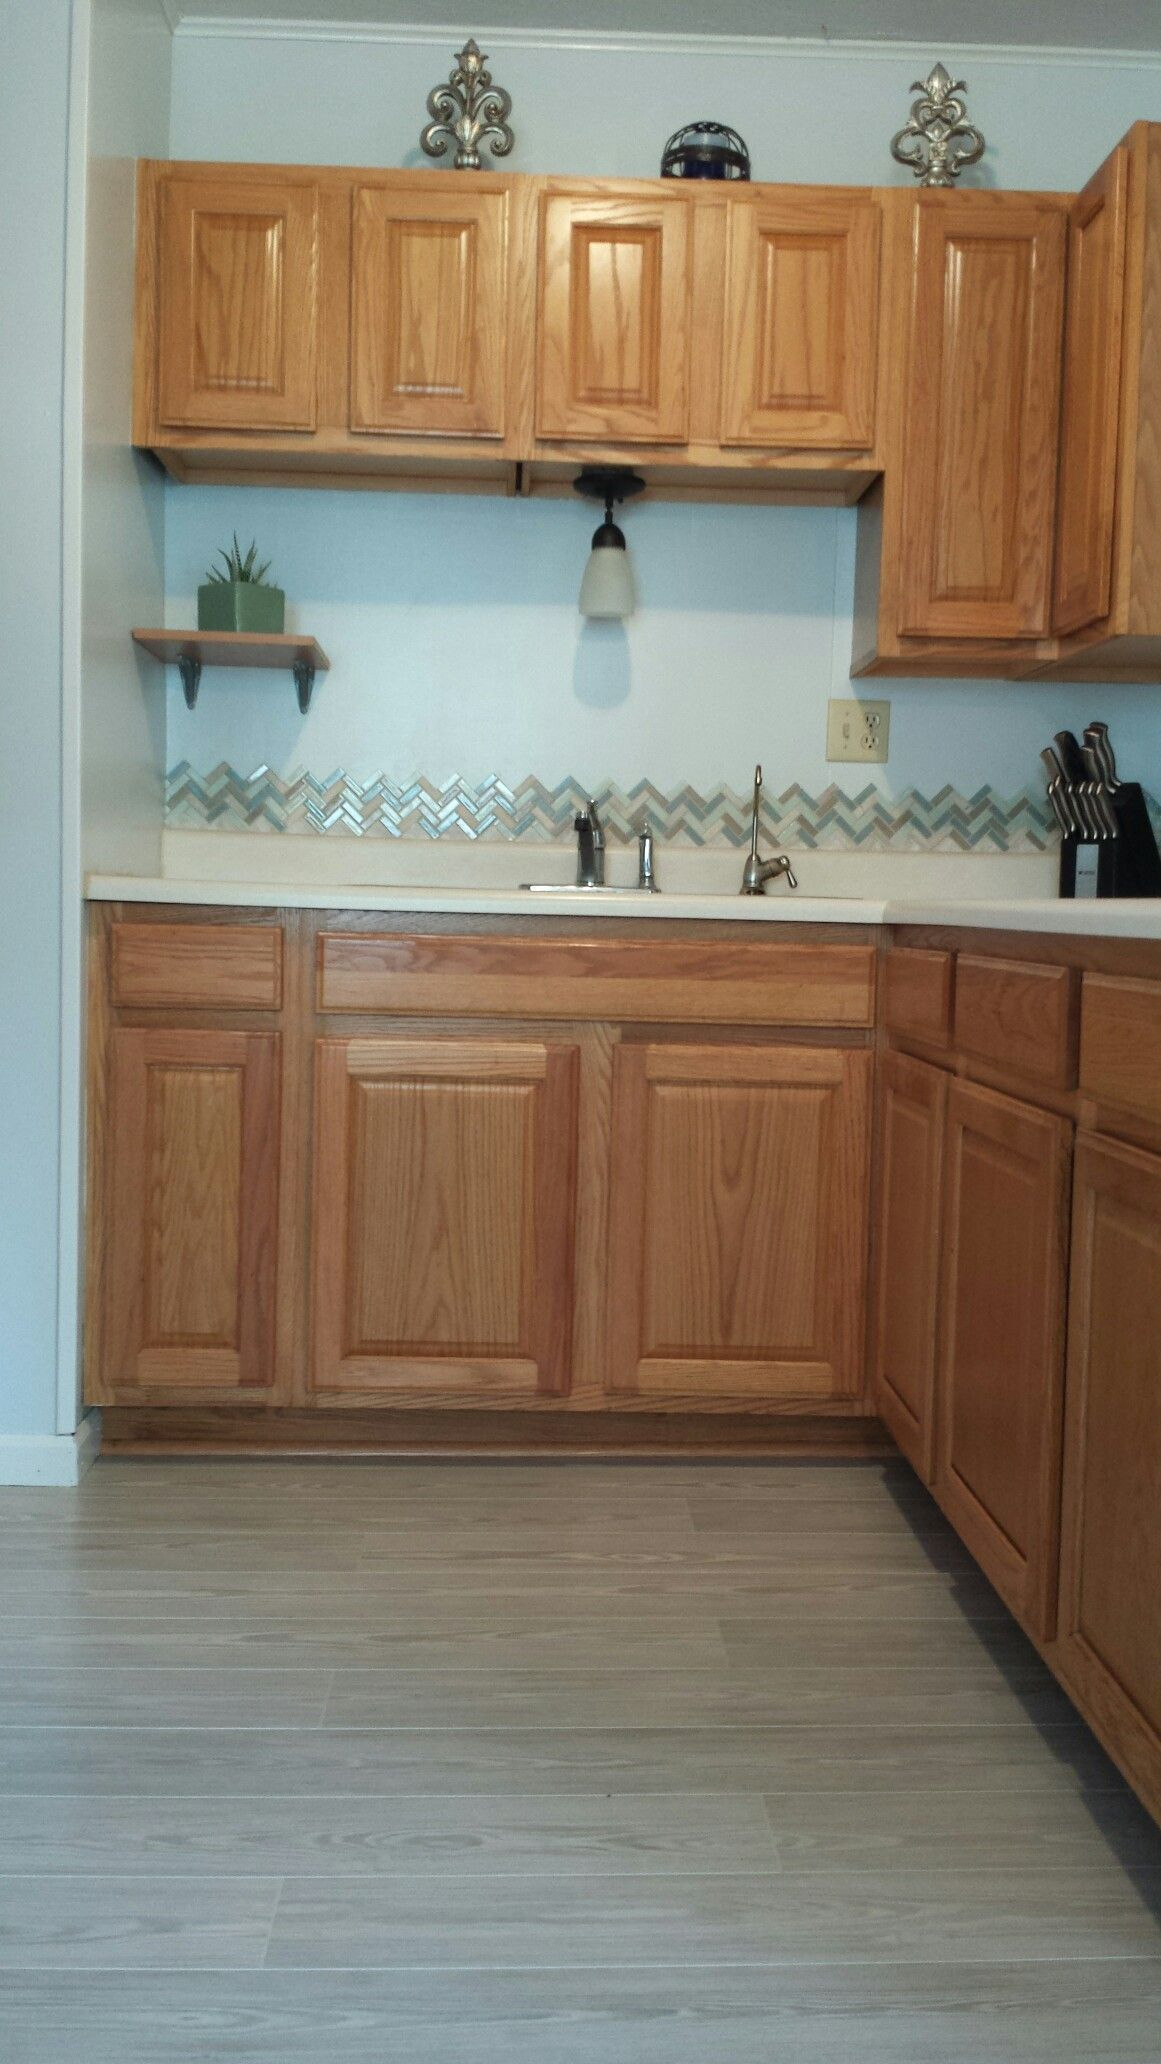 Best Of What Color Floors Look Good With Oak Cabinets And View In 2020 Kitchen Cabinets And Flooring Honey Oak Cabinets Light Oak Cabinets